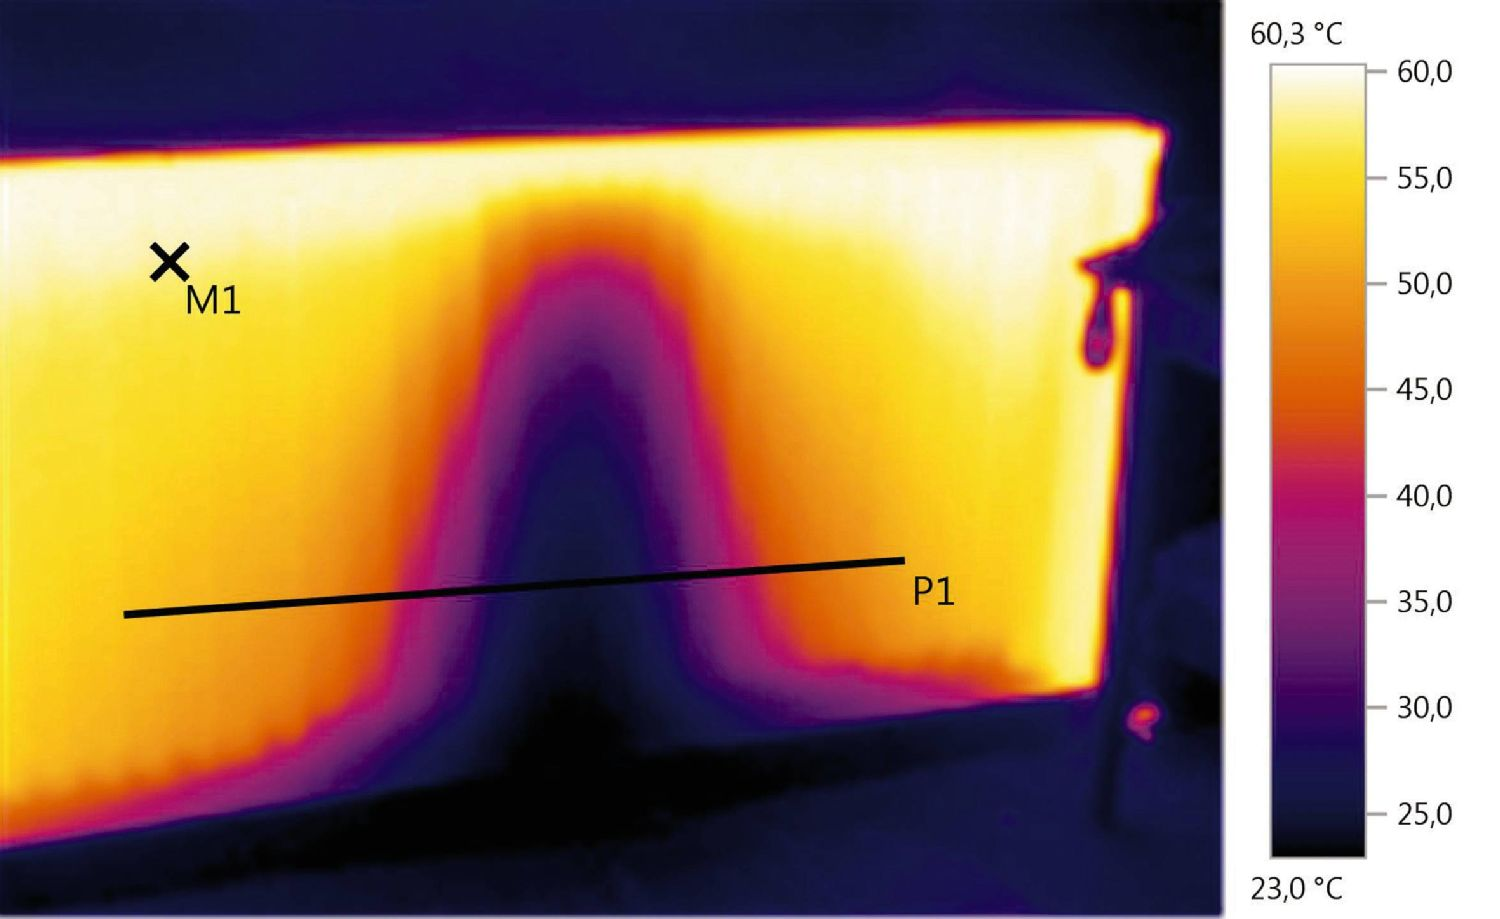 Thermal image heating systems